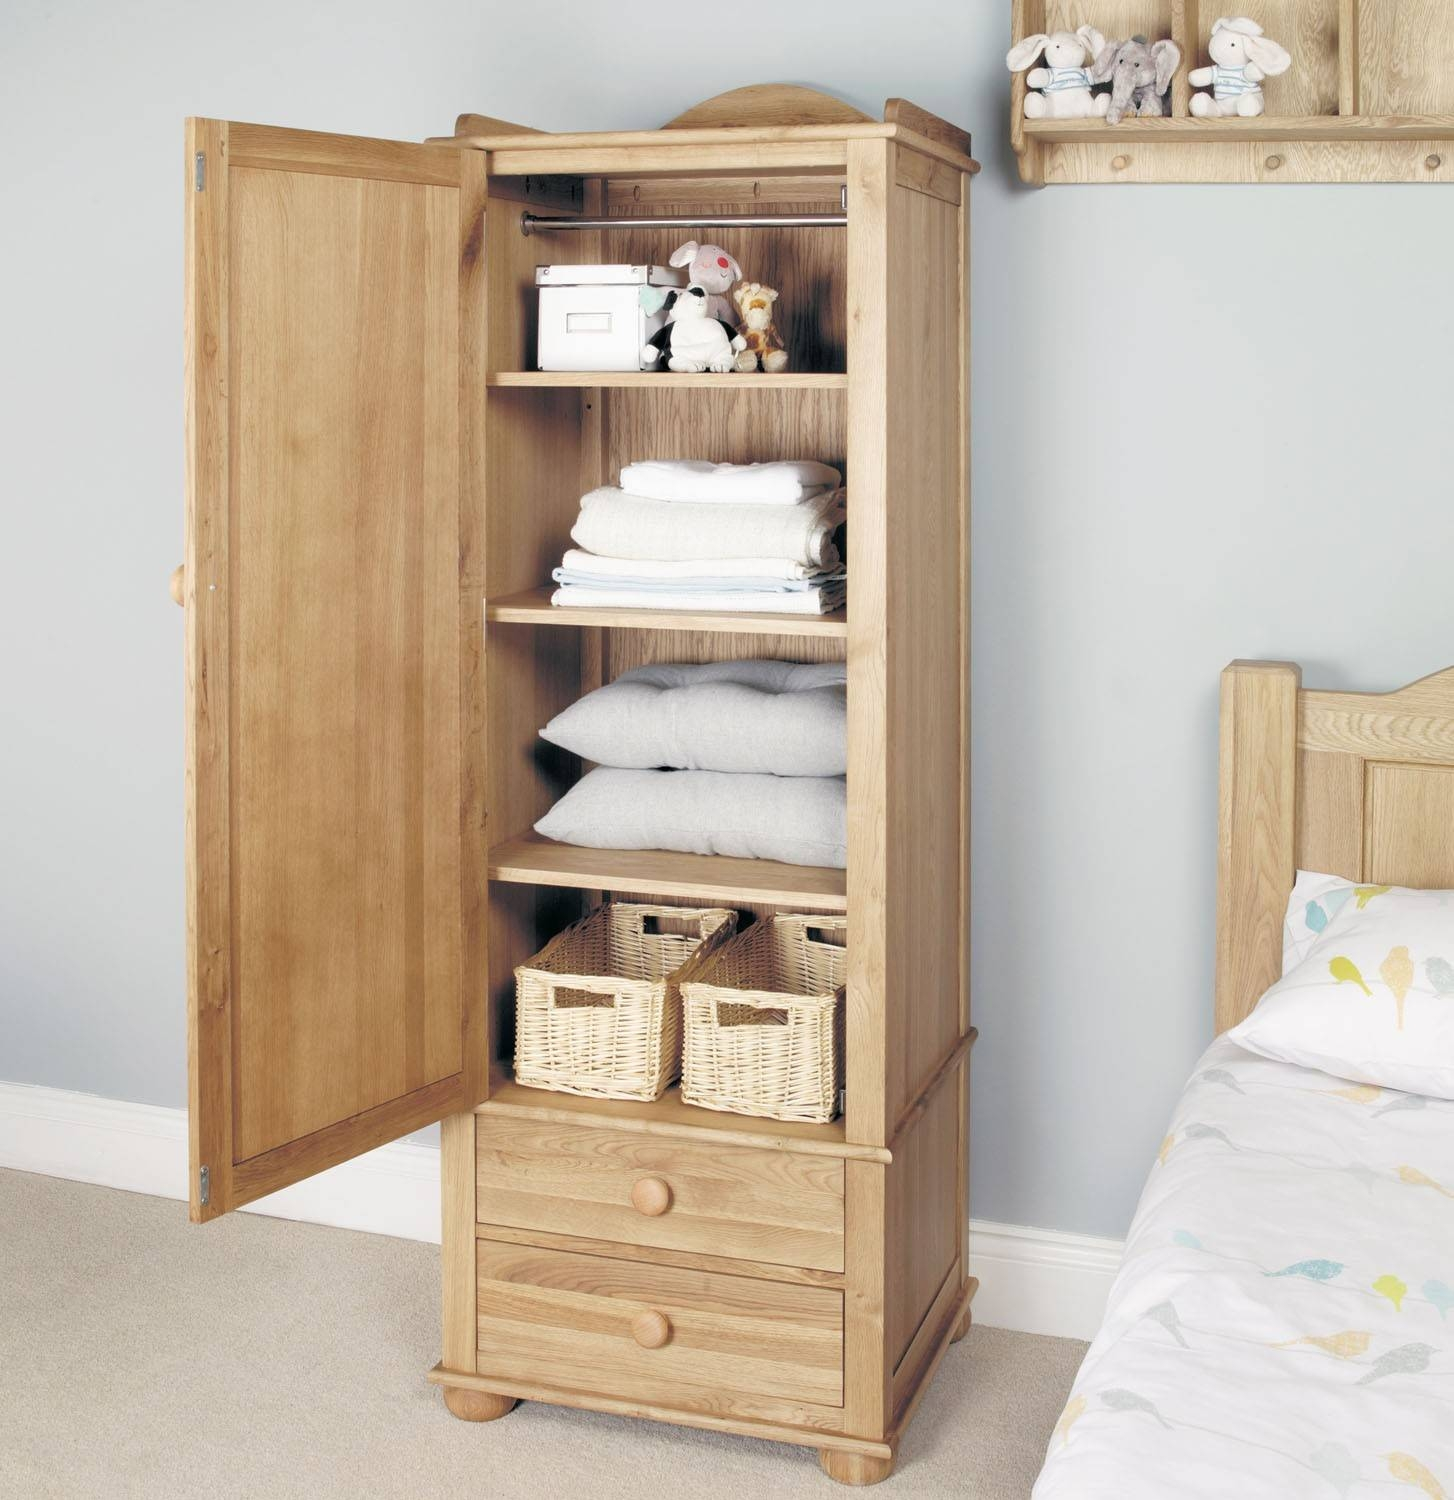 Amelie Oak Childrens Single Wardrobe - Amelie Oak Children's within Single Oak Wardrobes With Drawers (Image 2 of 15)